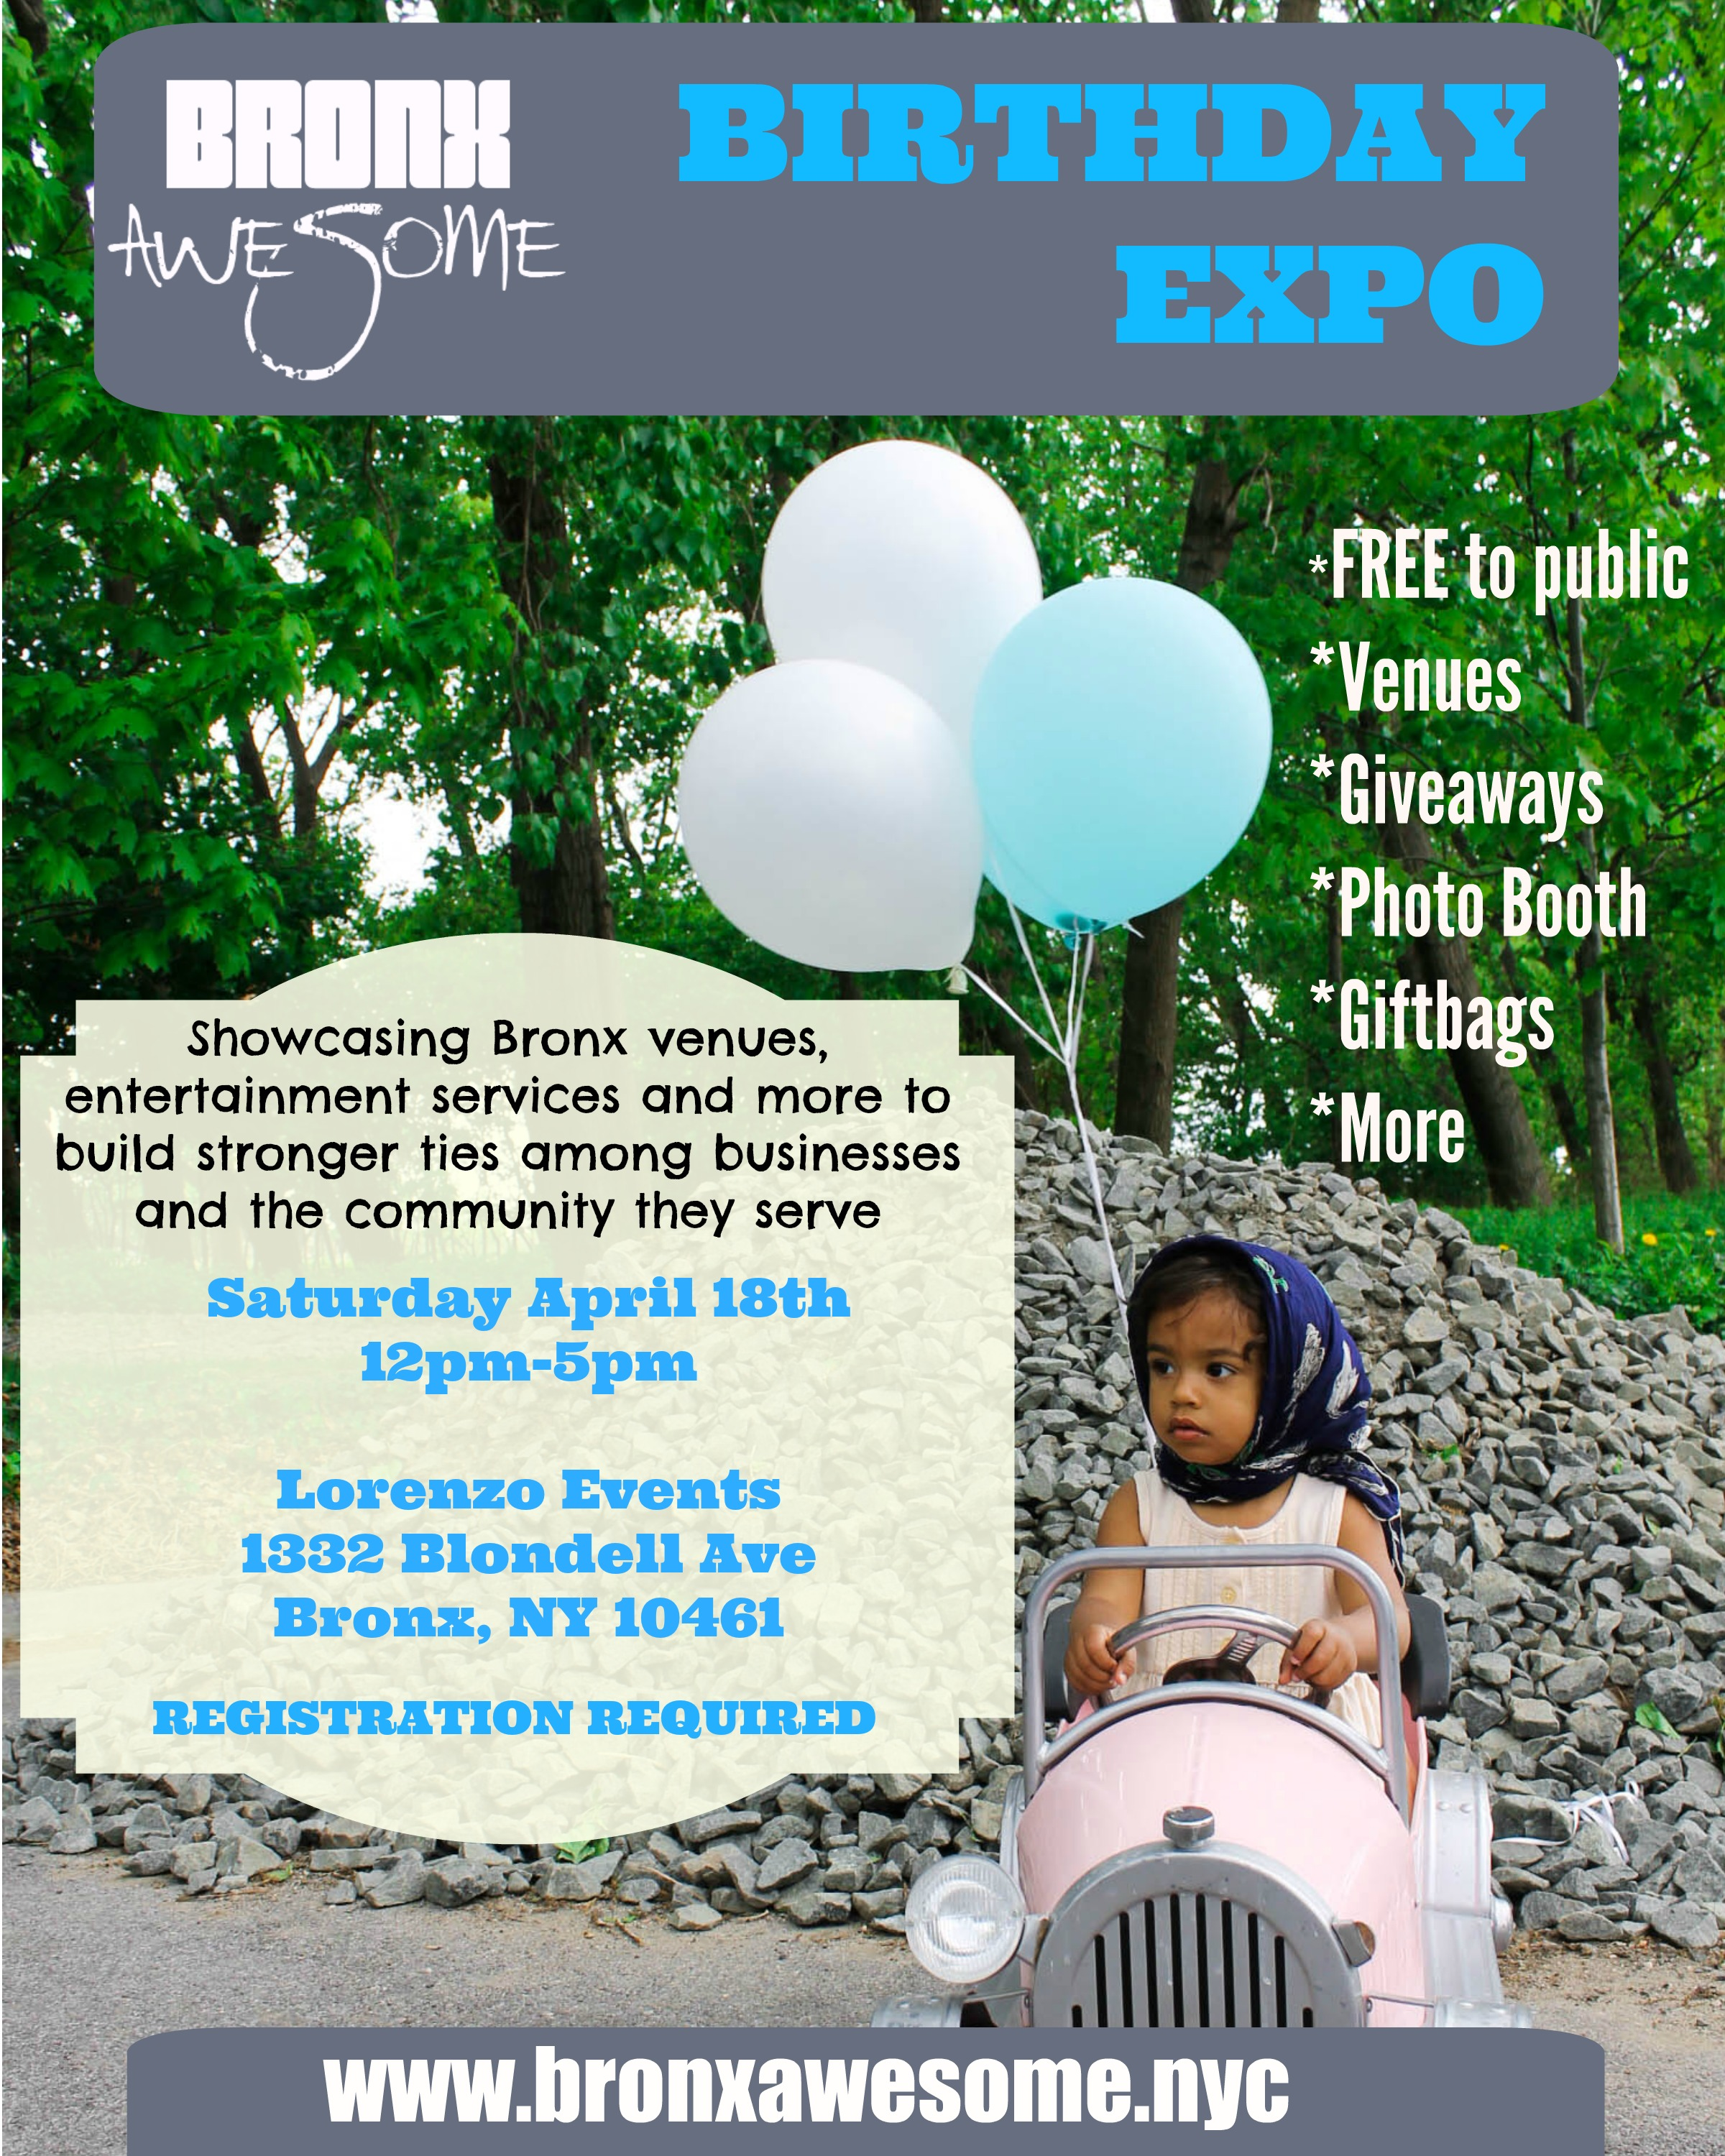 Bronx Awesome Birthday Expo